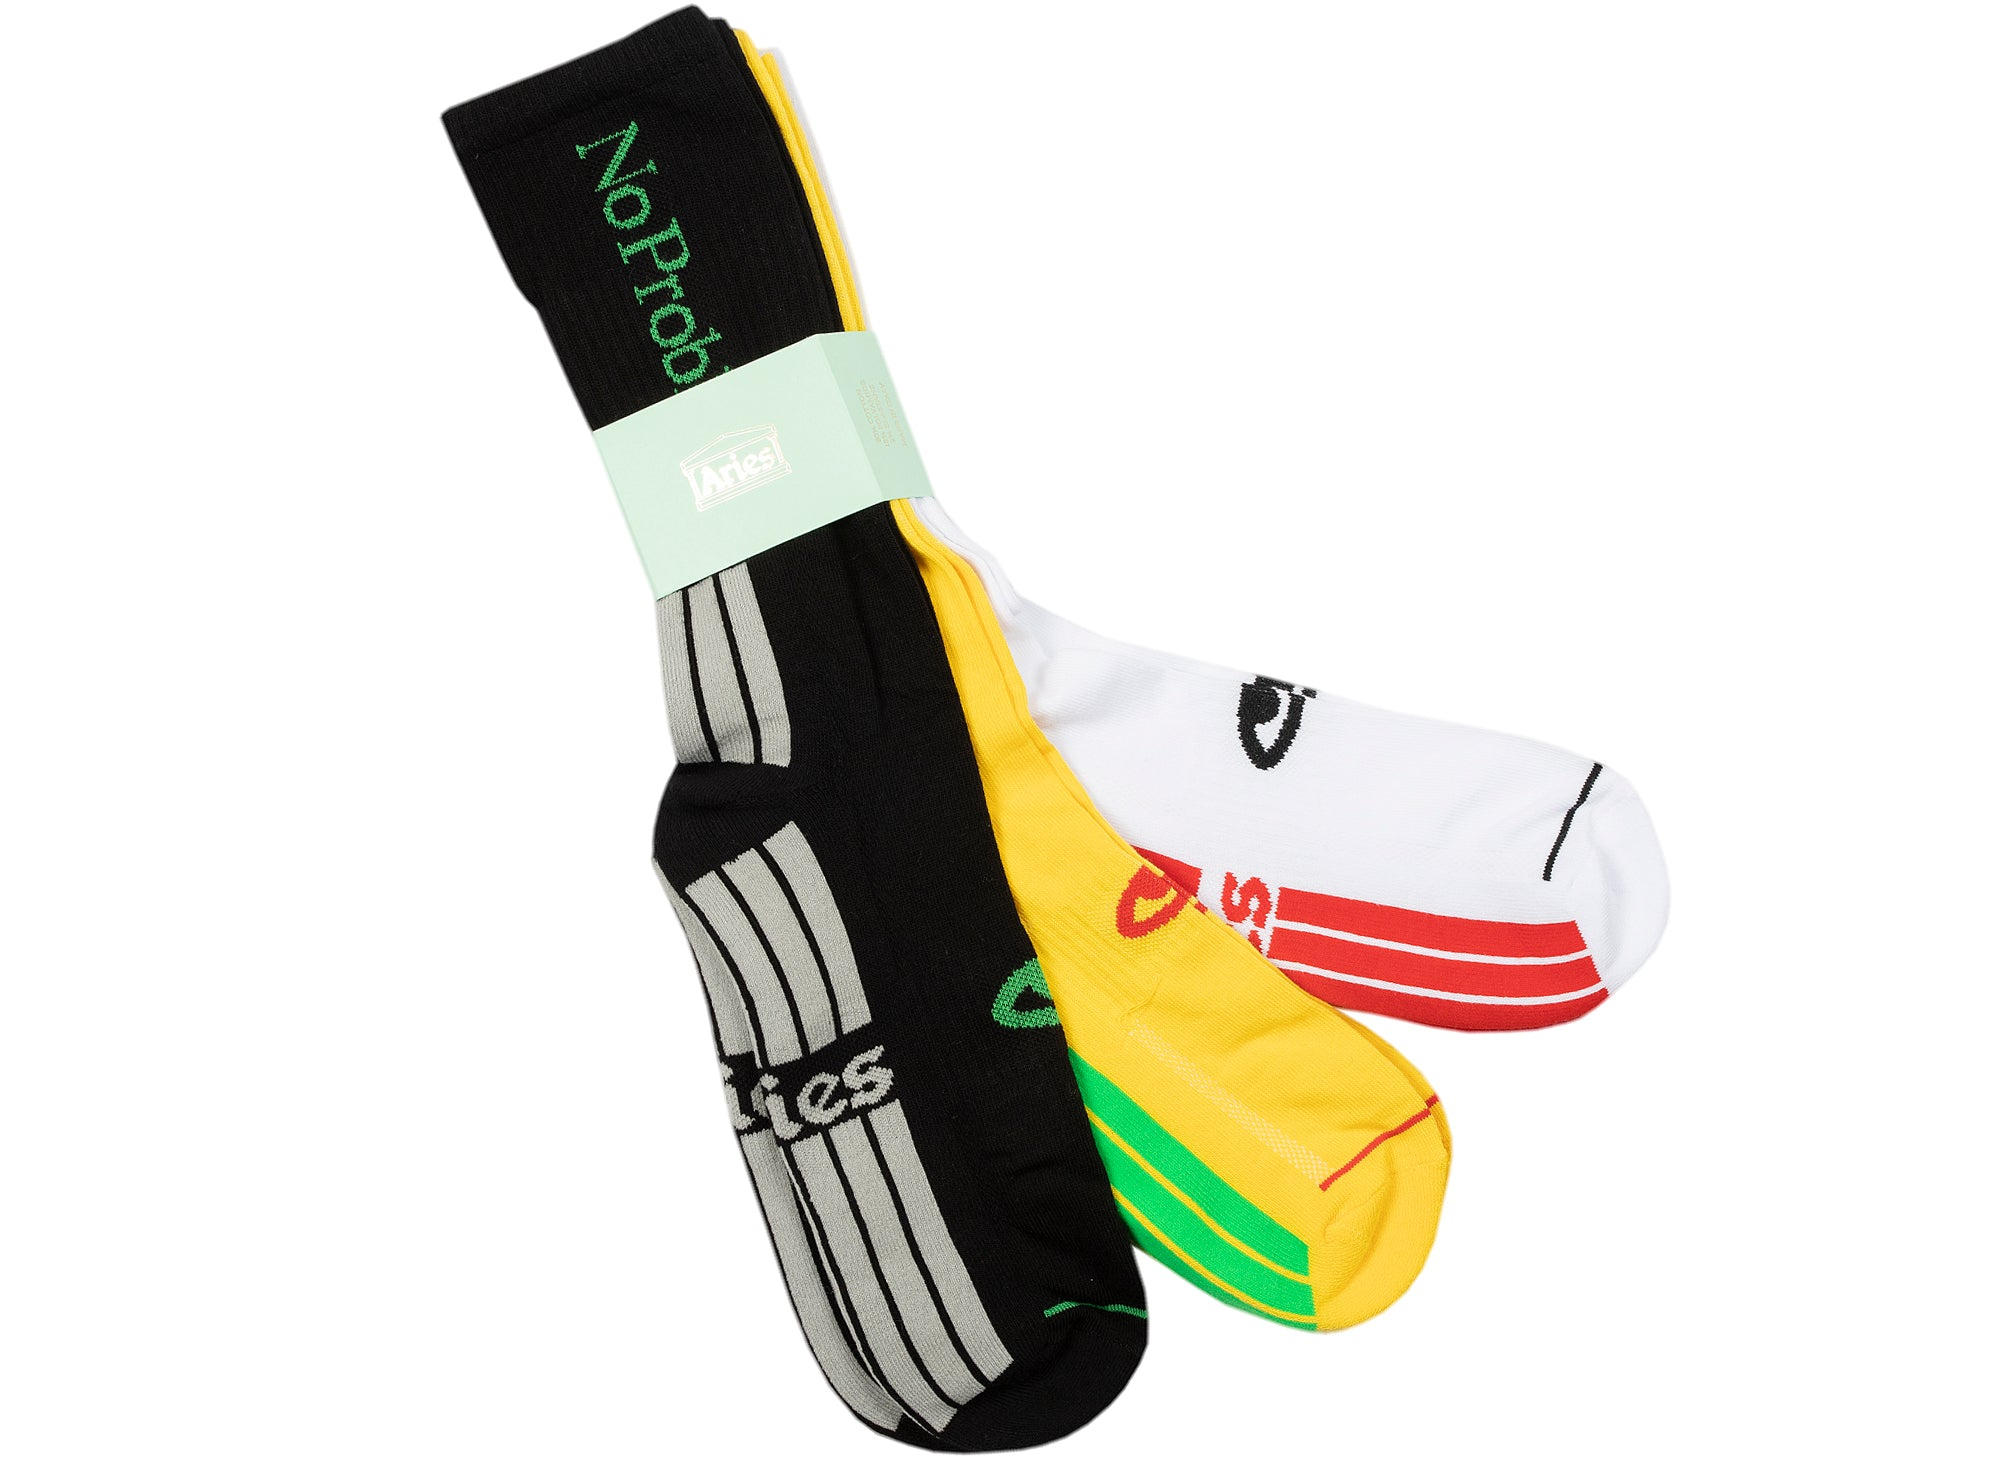 Aries 3-Pack No Problemo Socks xld